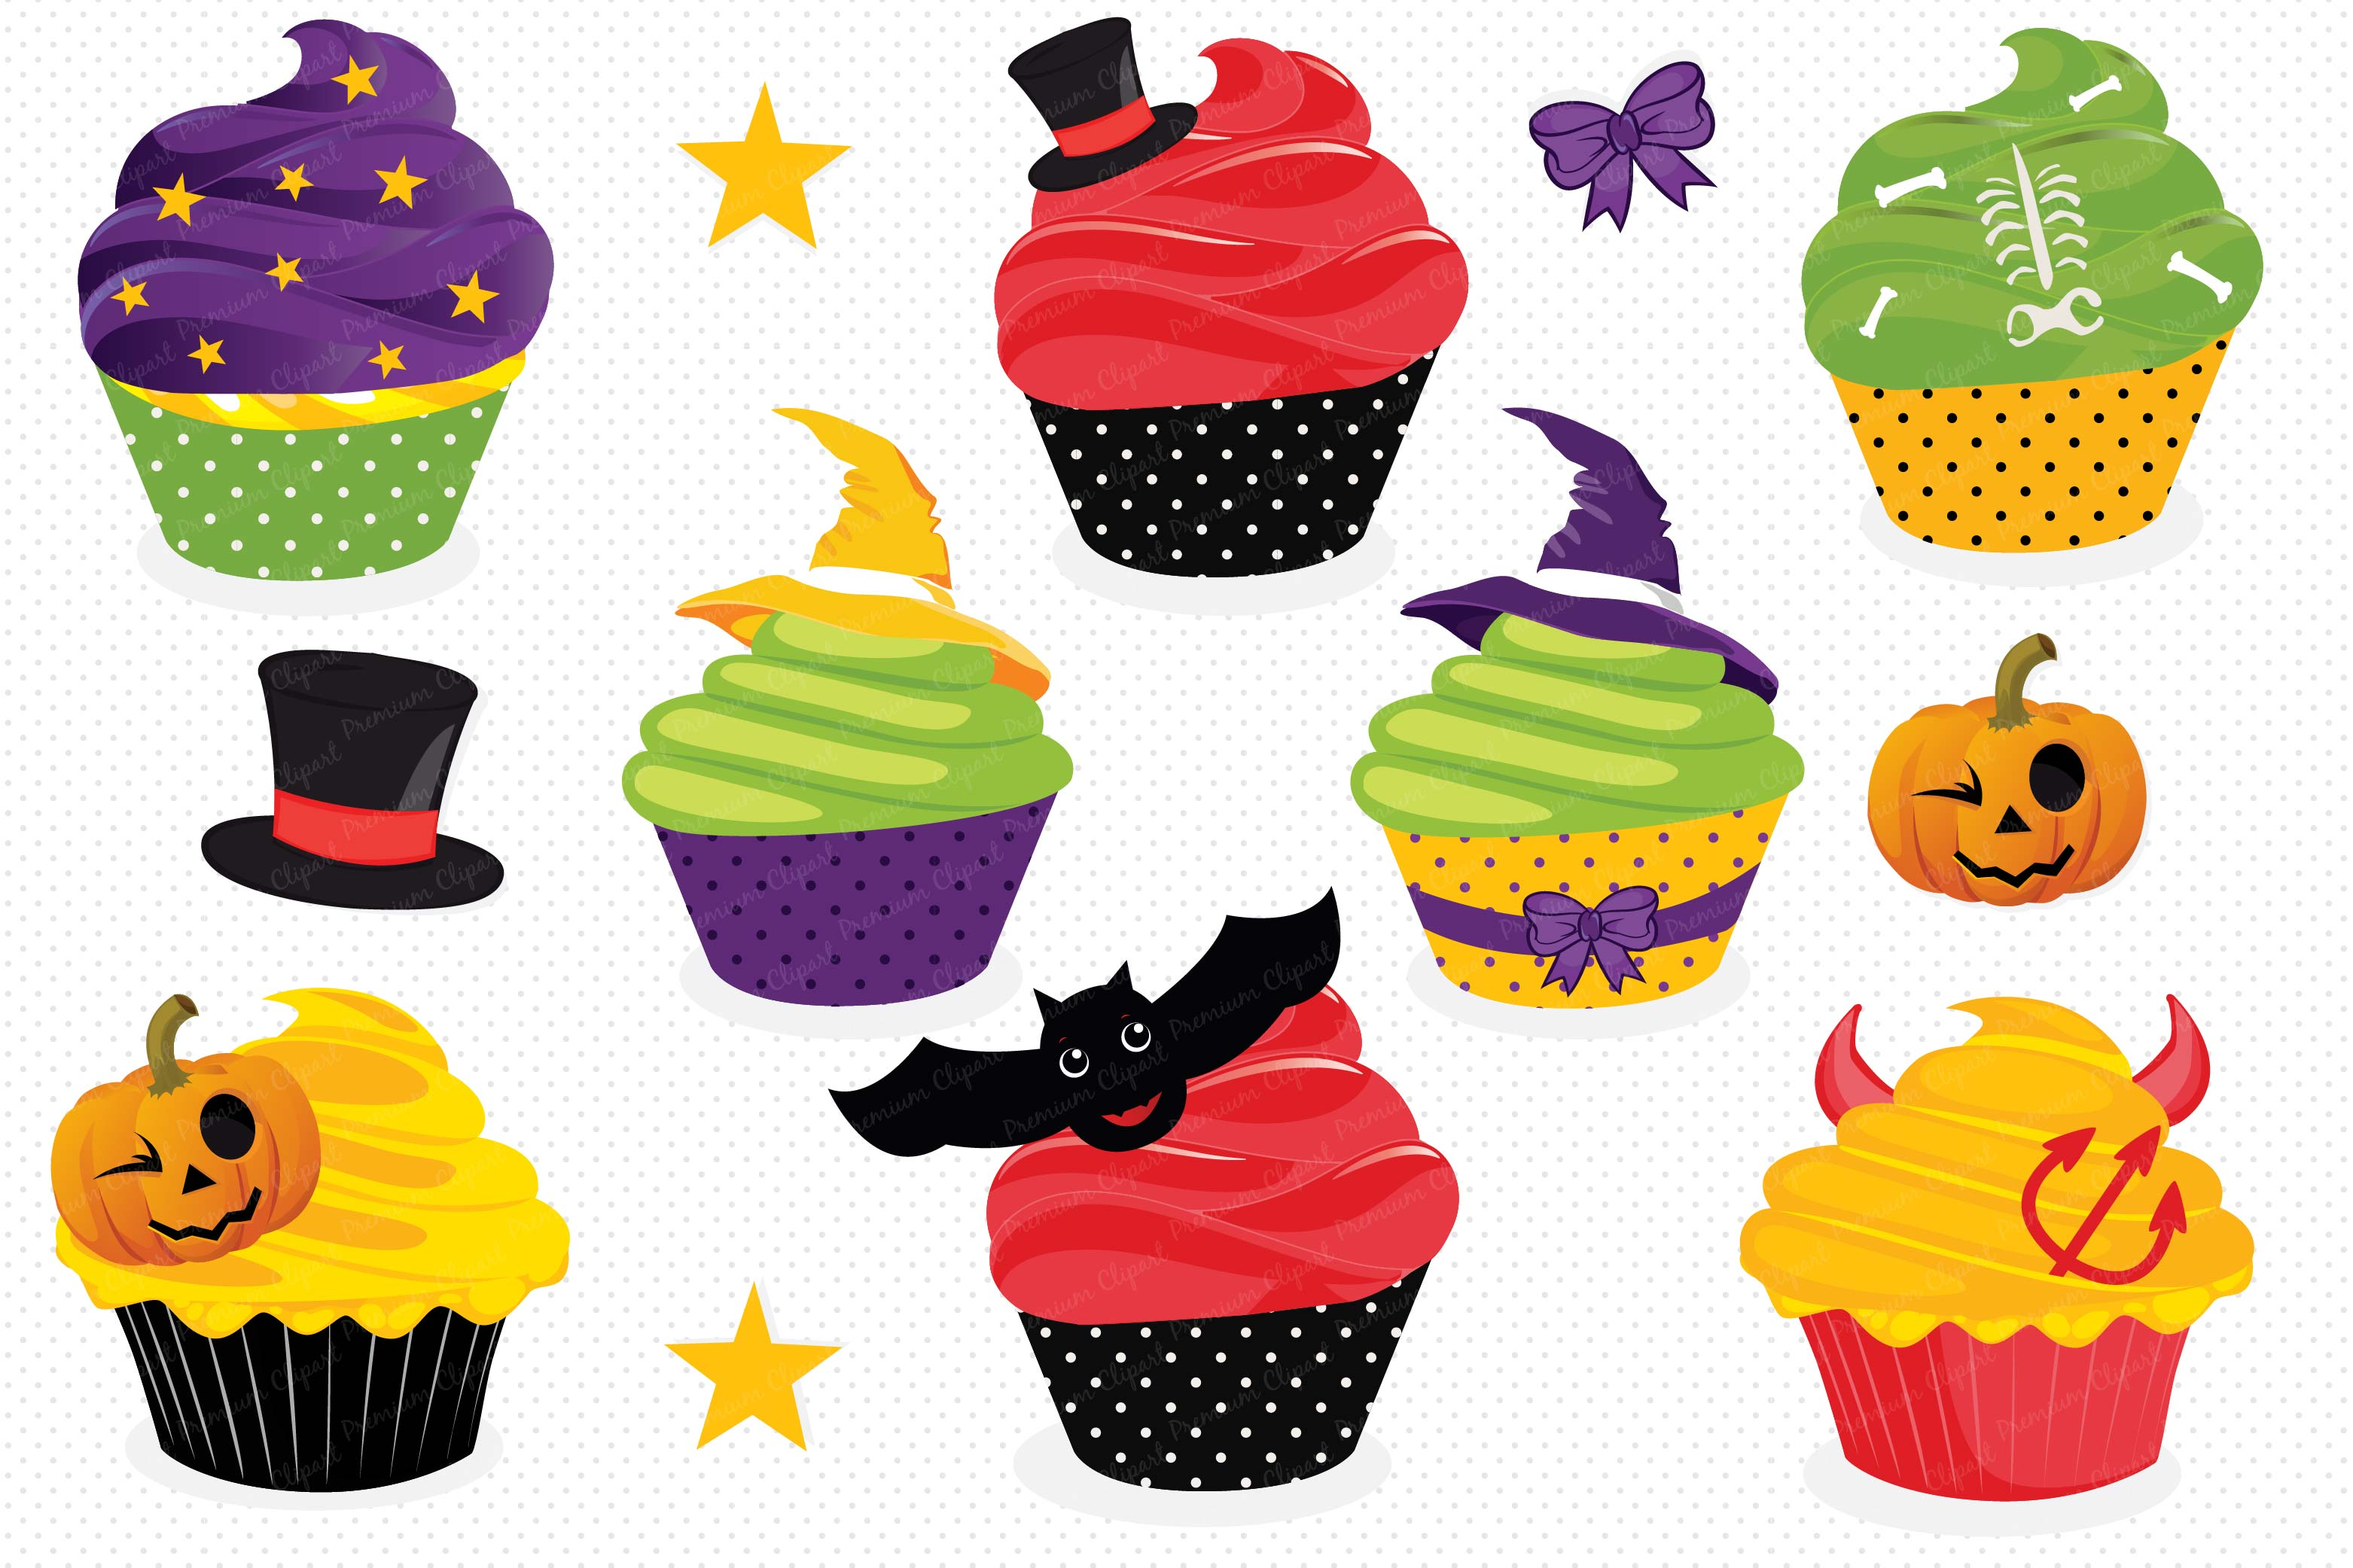 Cupcake graphics clipart vector black and white library Halloween cupcake clipart, Haloween cupcake graphics vector black and white library